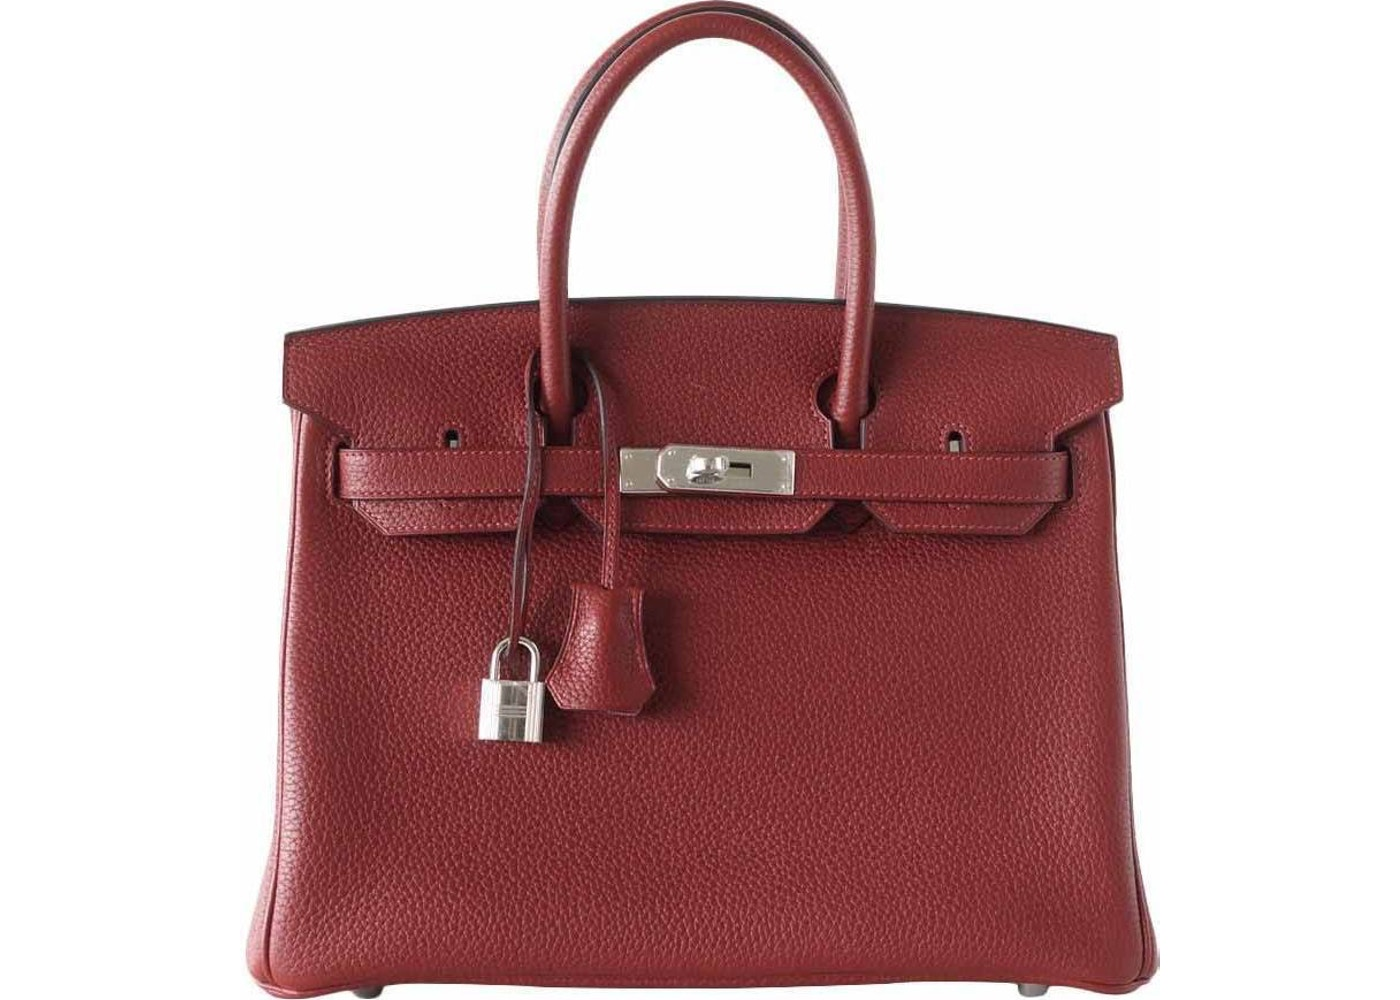 73441e1d863d Sell. or Ask. View All Bids. Hermes Birkin Togo 30 ...